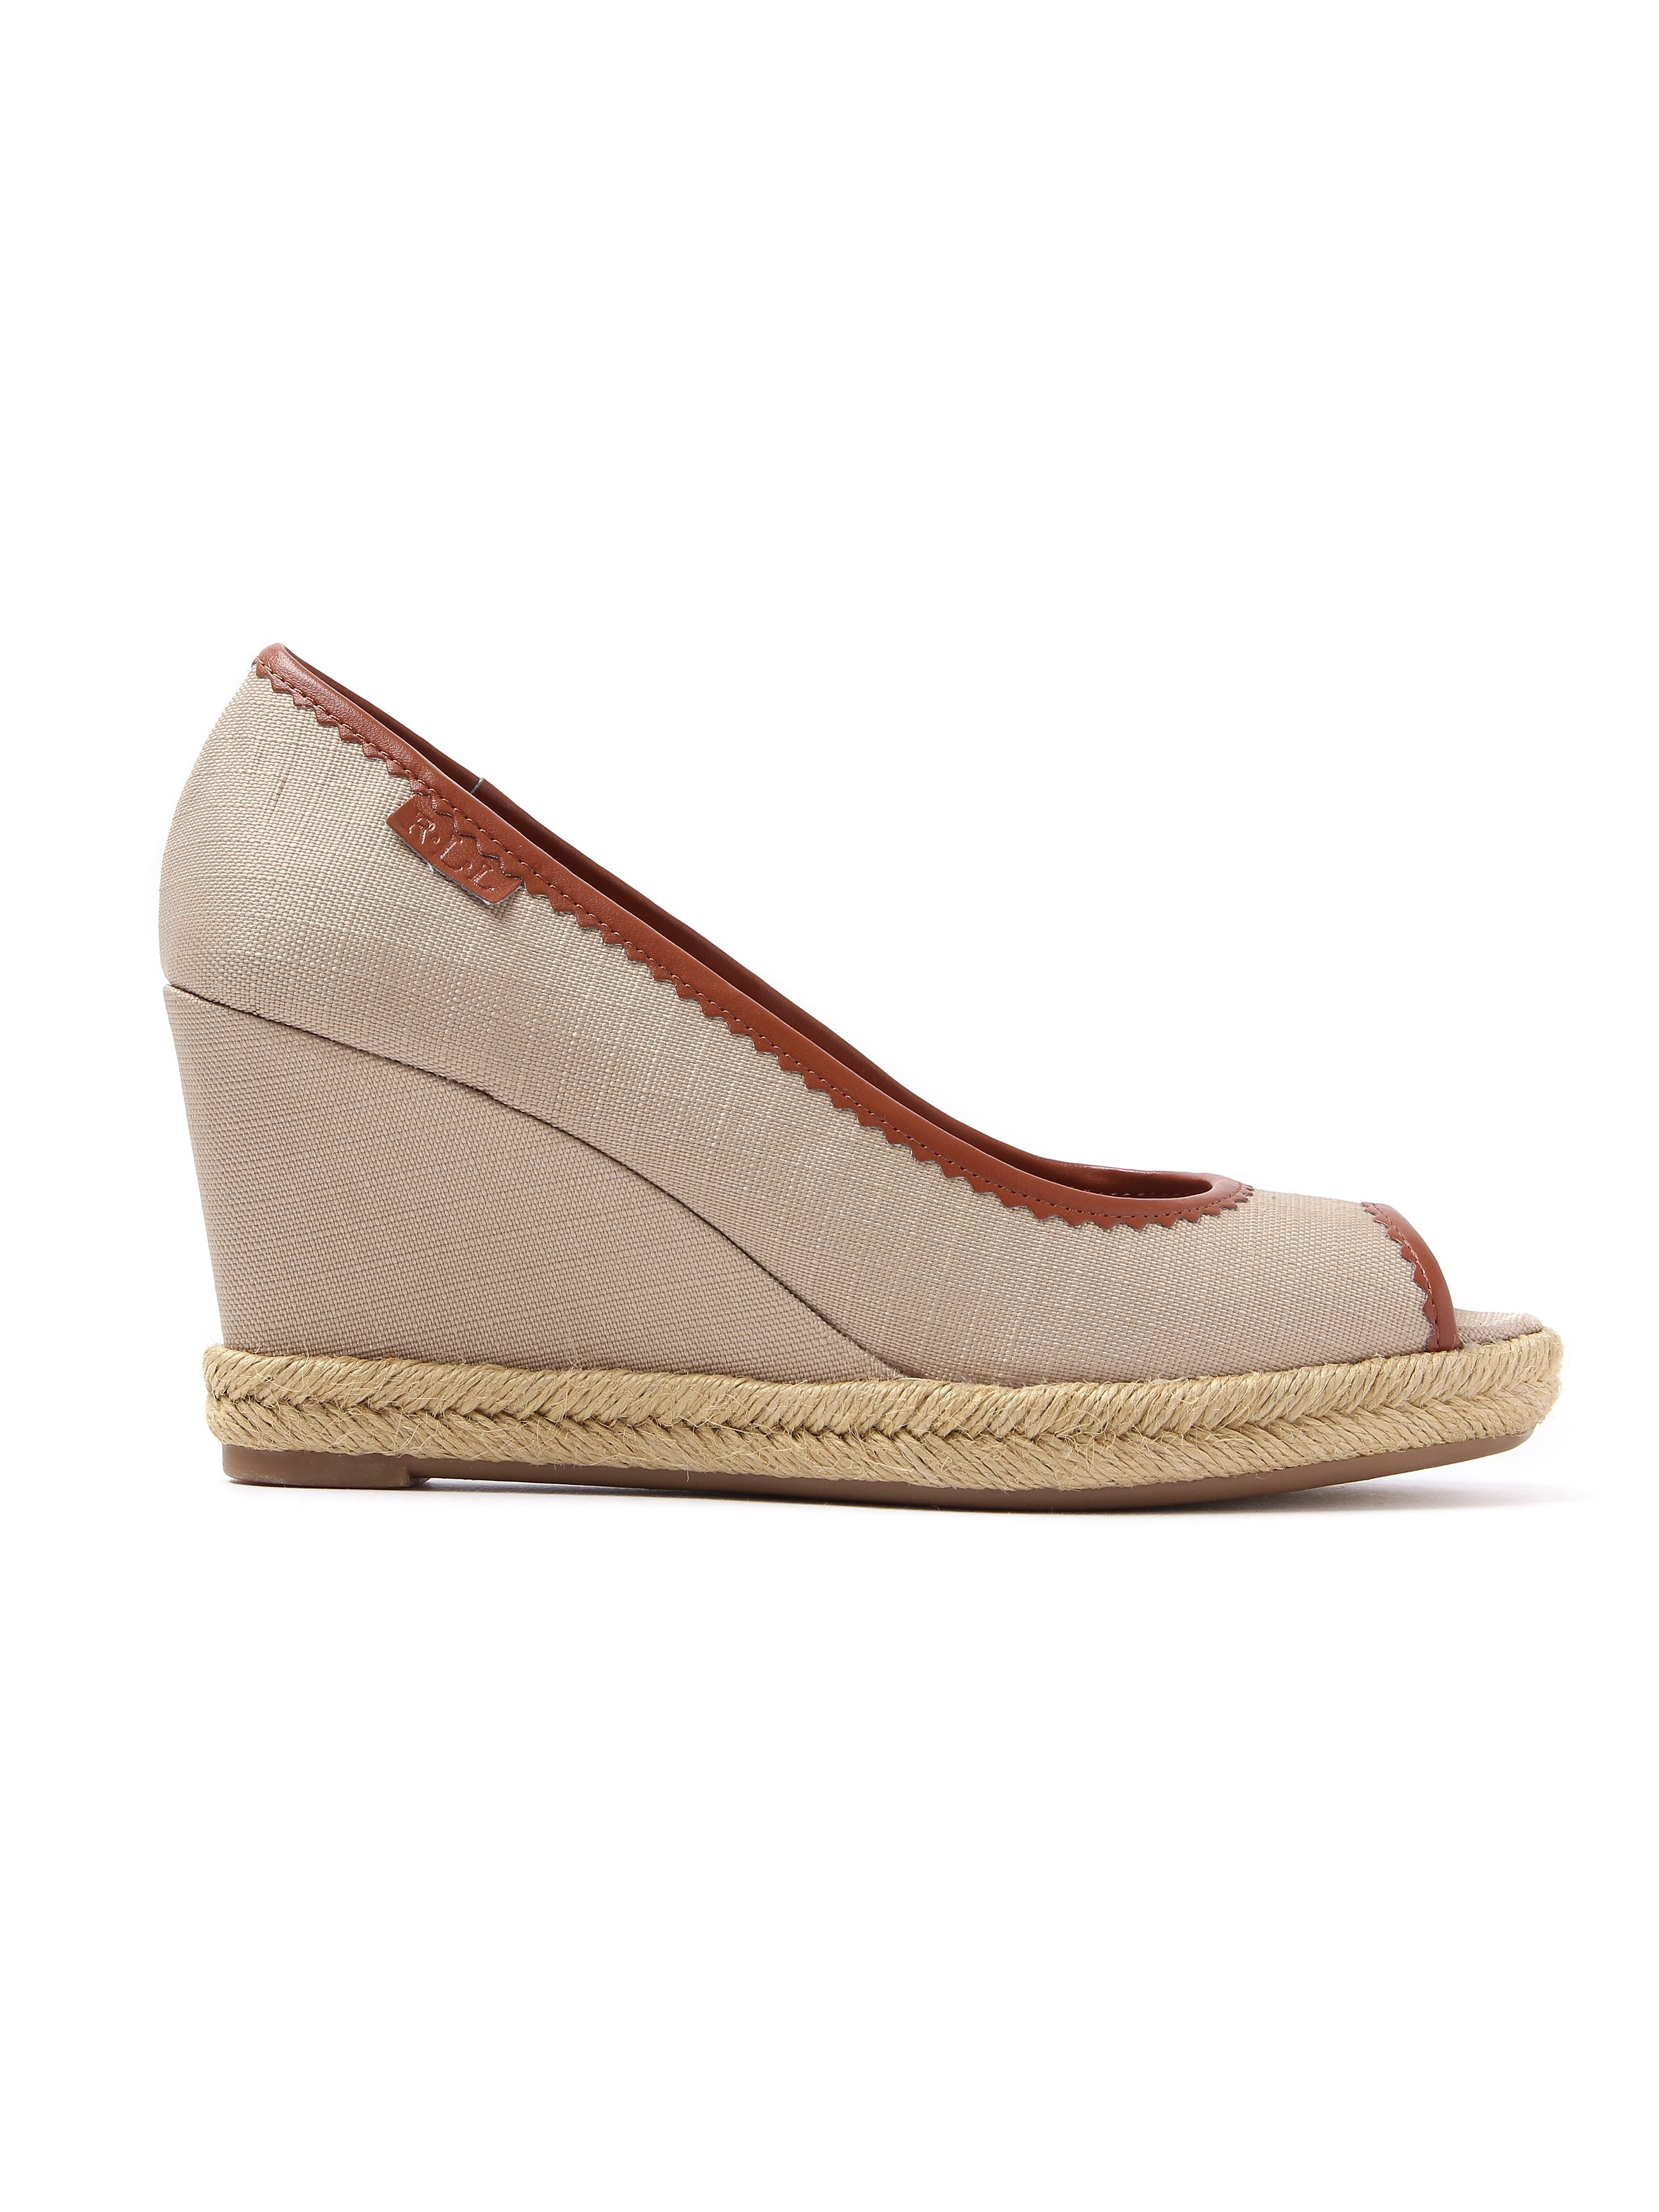 Lauren Ralph Lauren Women's Nella Canvas Peep-Toe Wedge Espadrilles - Khaki & Polo Tan